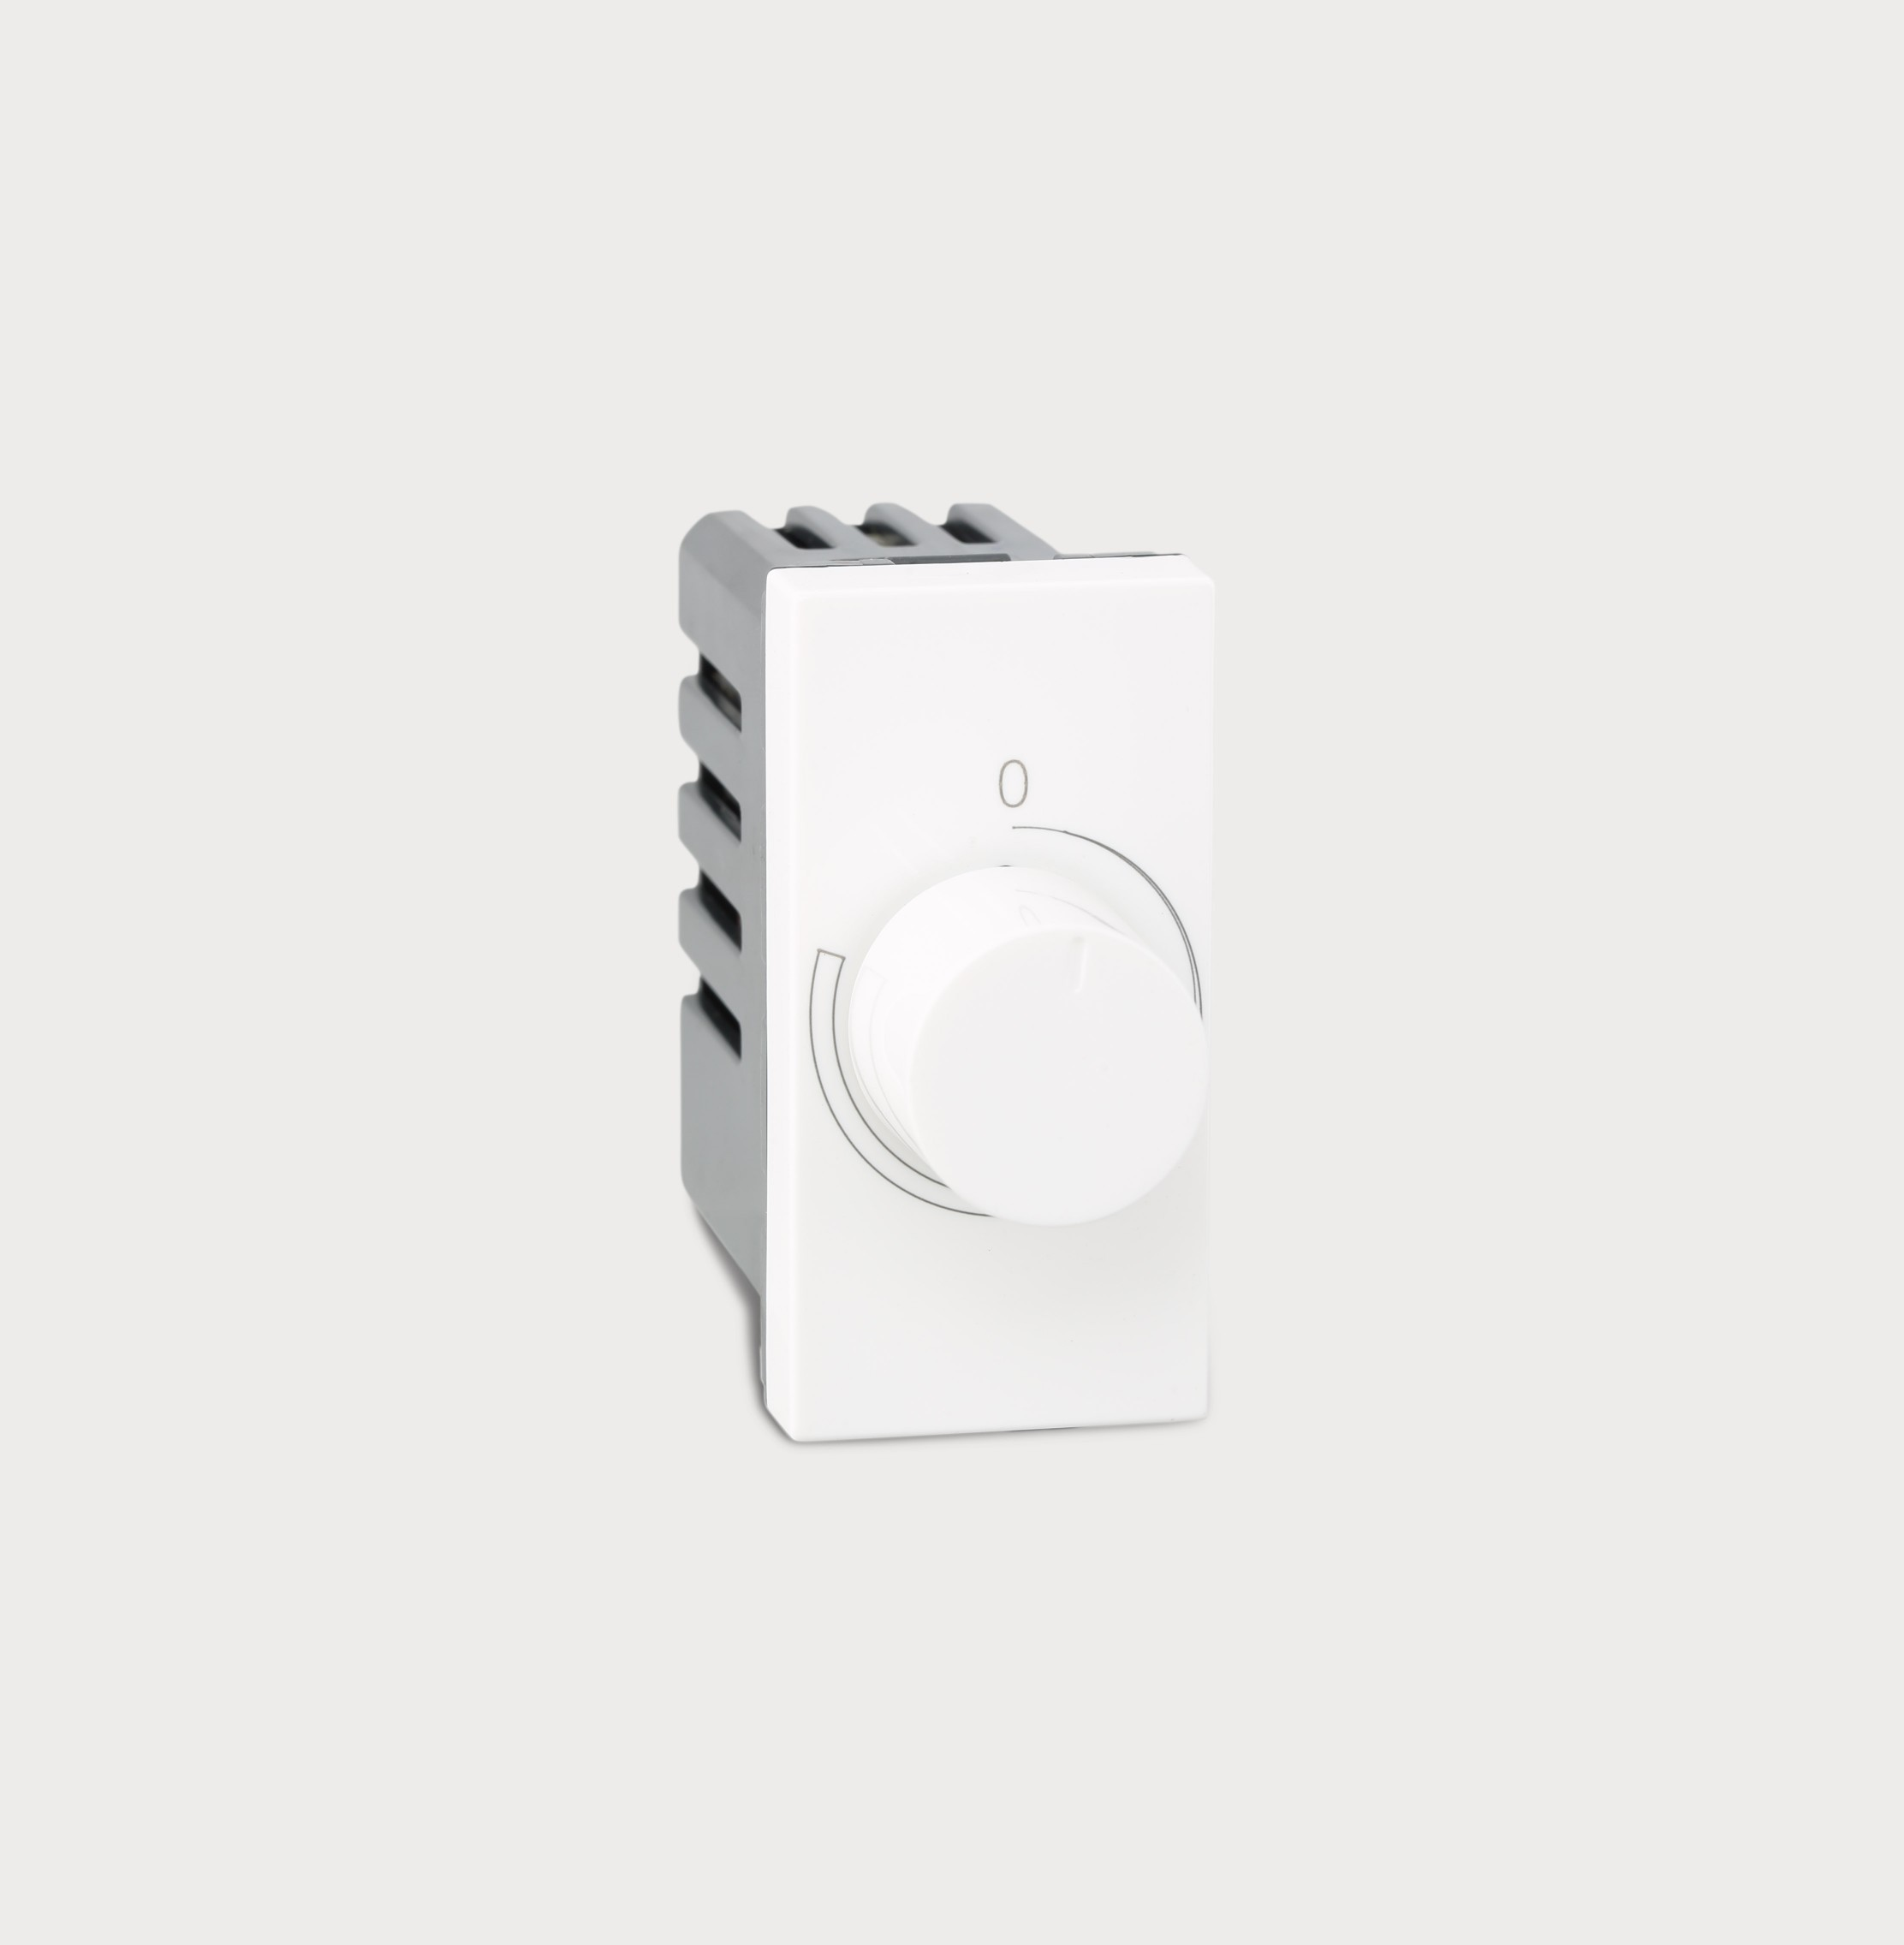 400W Rotary Dimmer (White) 673024 - Electrical and Networking ...